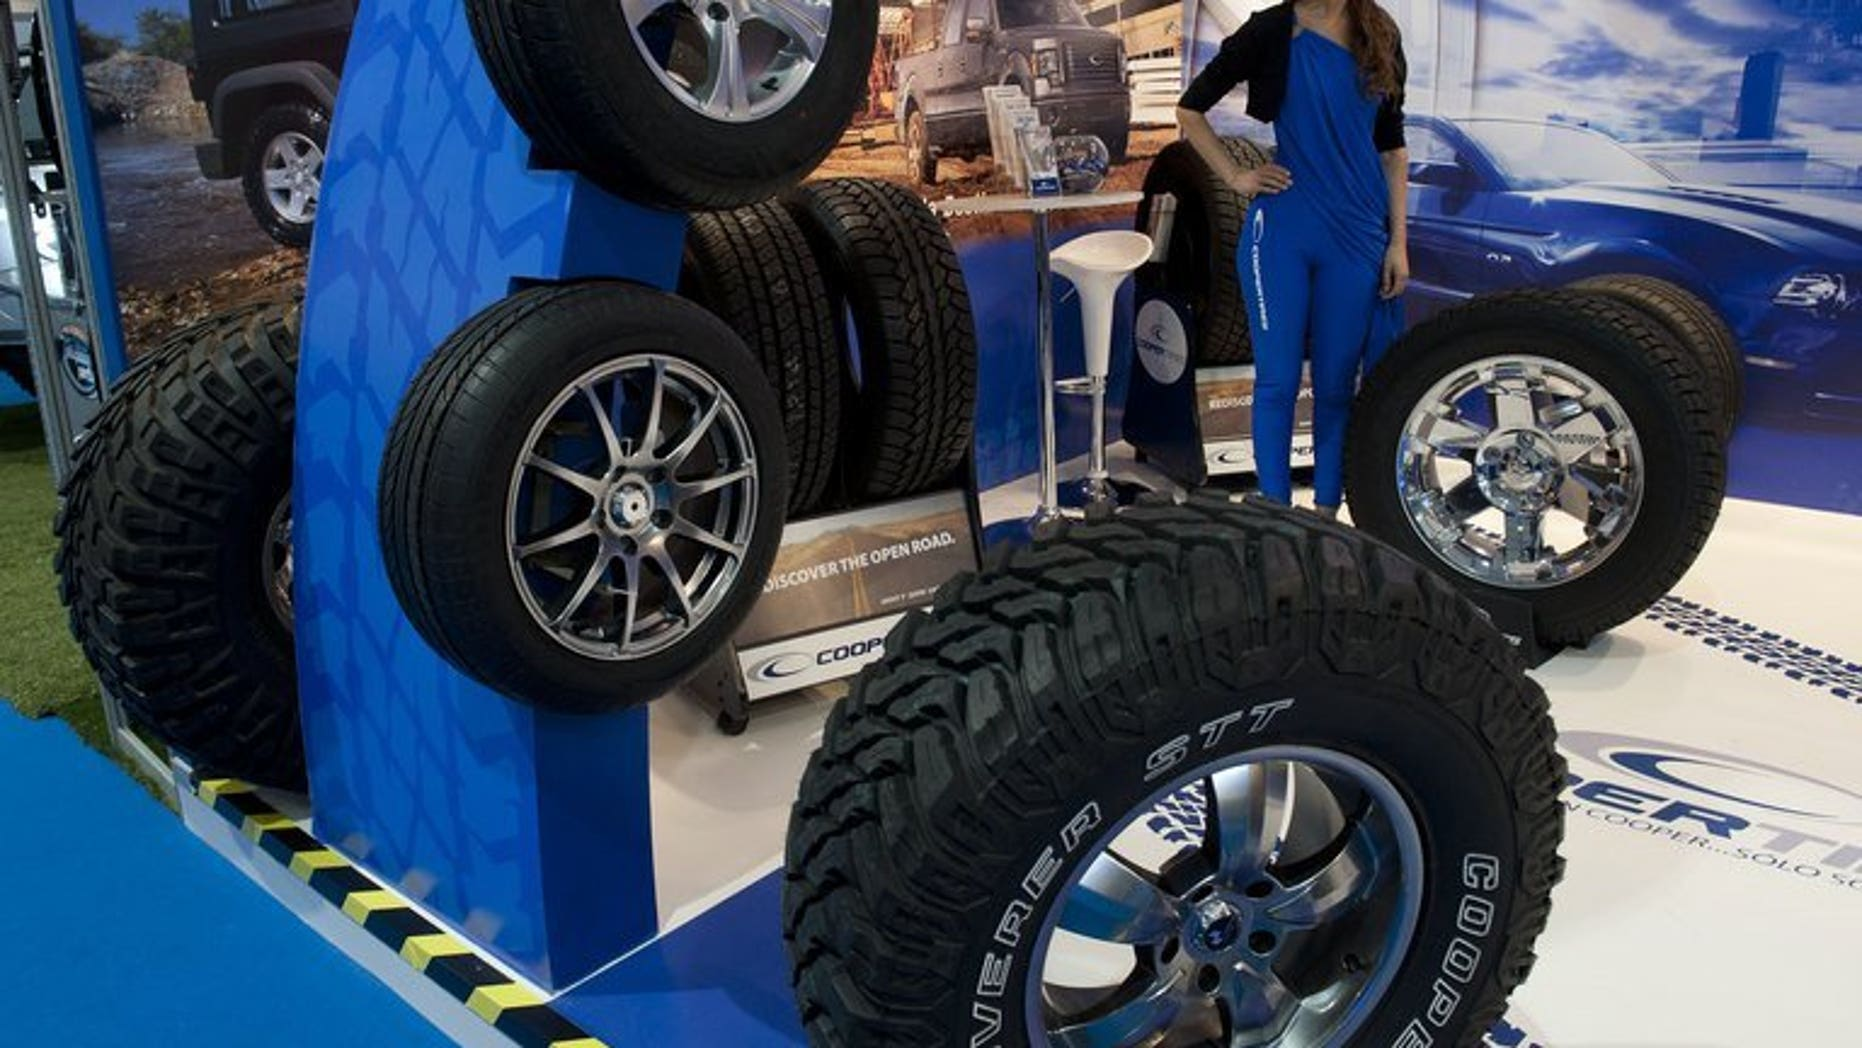 Cooper tyres are exhibited at a motor show in Santiago, on October 4, 2012. More than 5,000 Chinese workers at a Sino-US joint venture tyre manufacturer for Cooper Tireand Rubber have gone on strike against the American parent company's $2.5 billion takeover by an Indian firm, state media reported.